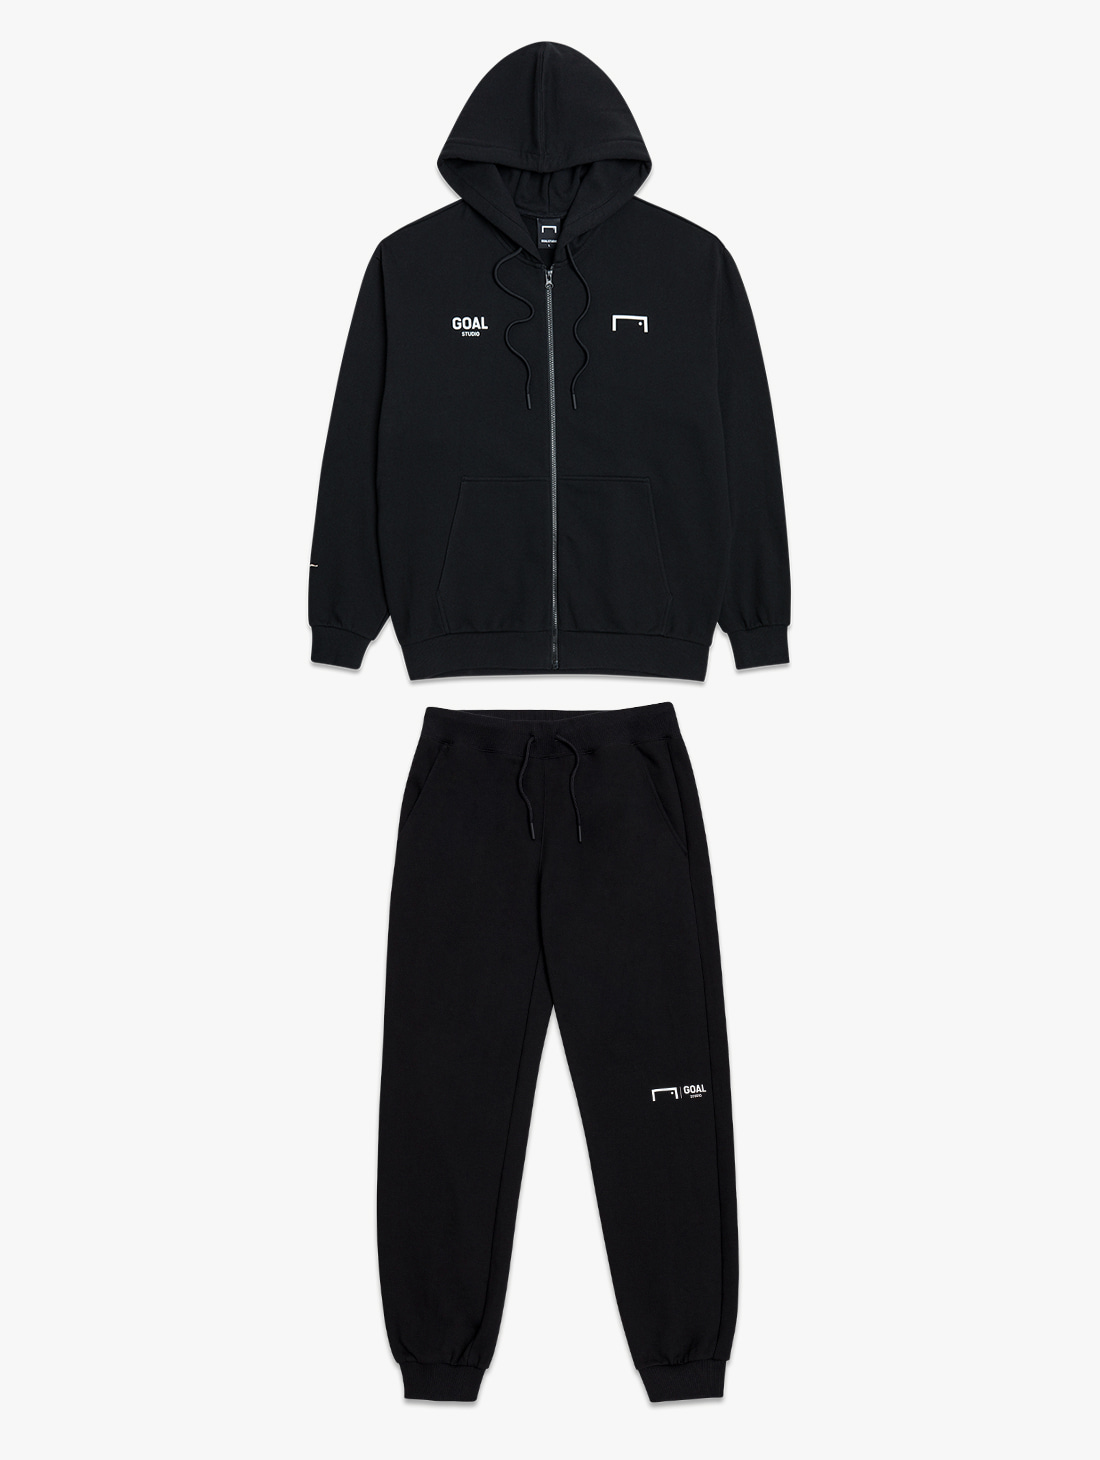 GOALSTUDIO [10% OFF] SIGNATURE ZIP UP HOODIE & GOAL KNIT JOGGER PANTS 2.0 SET